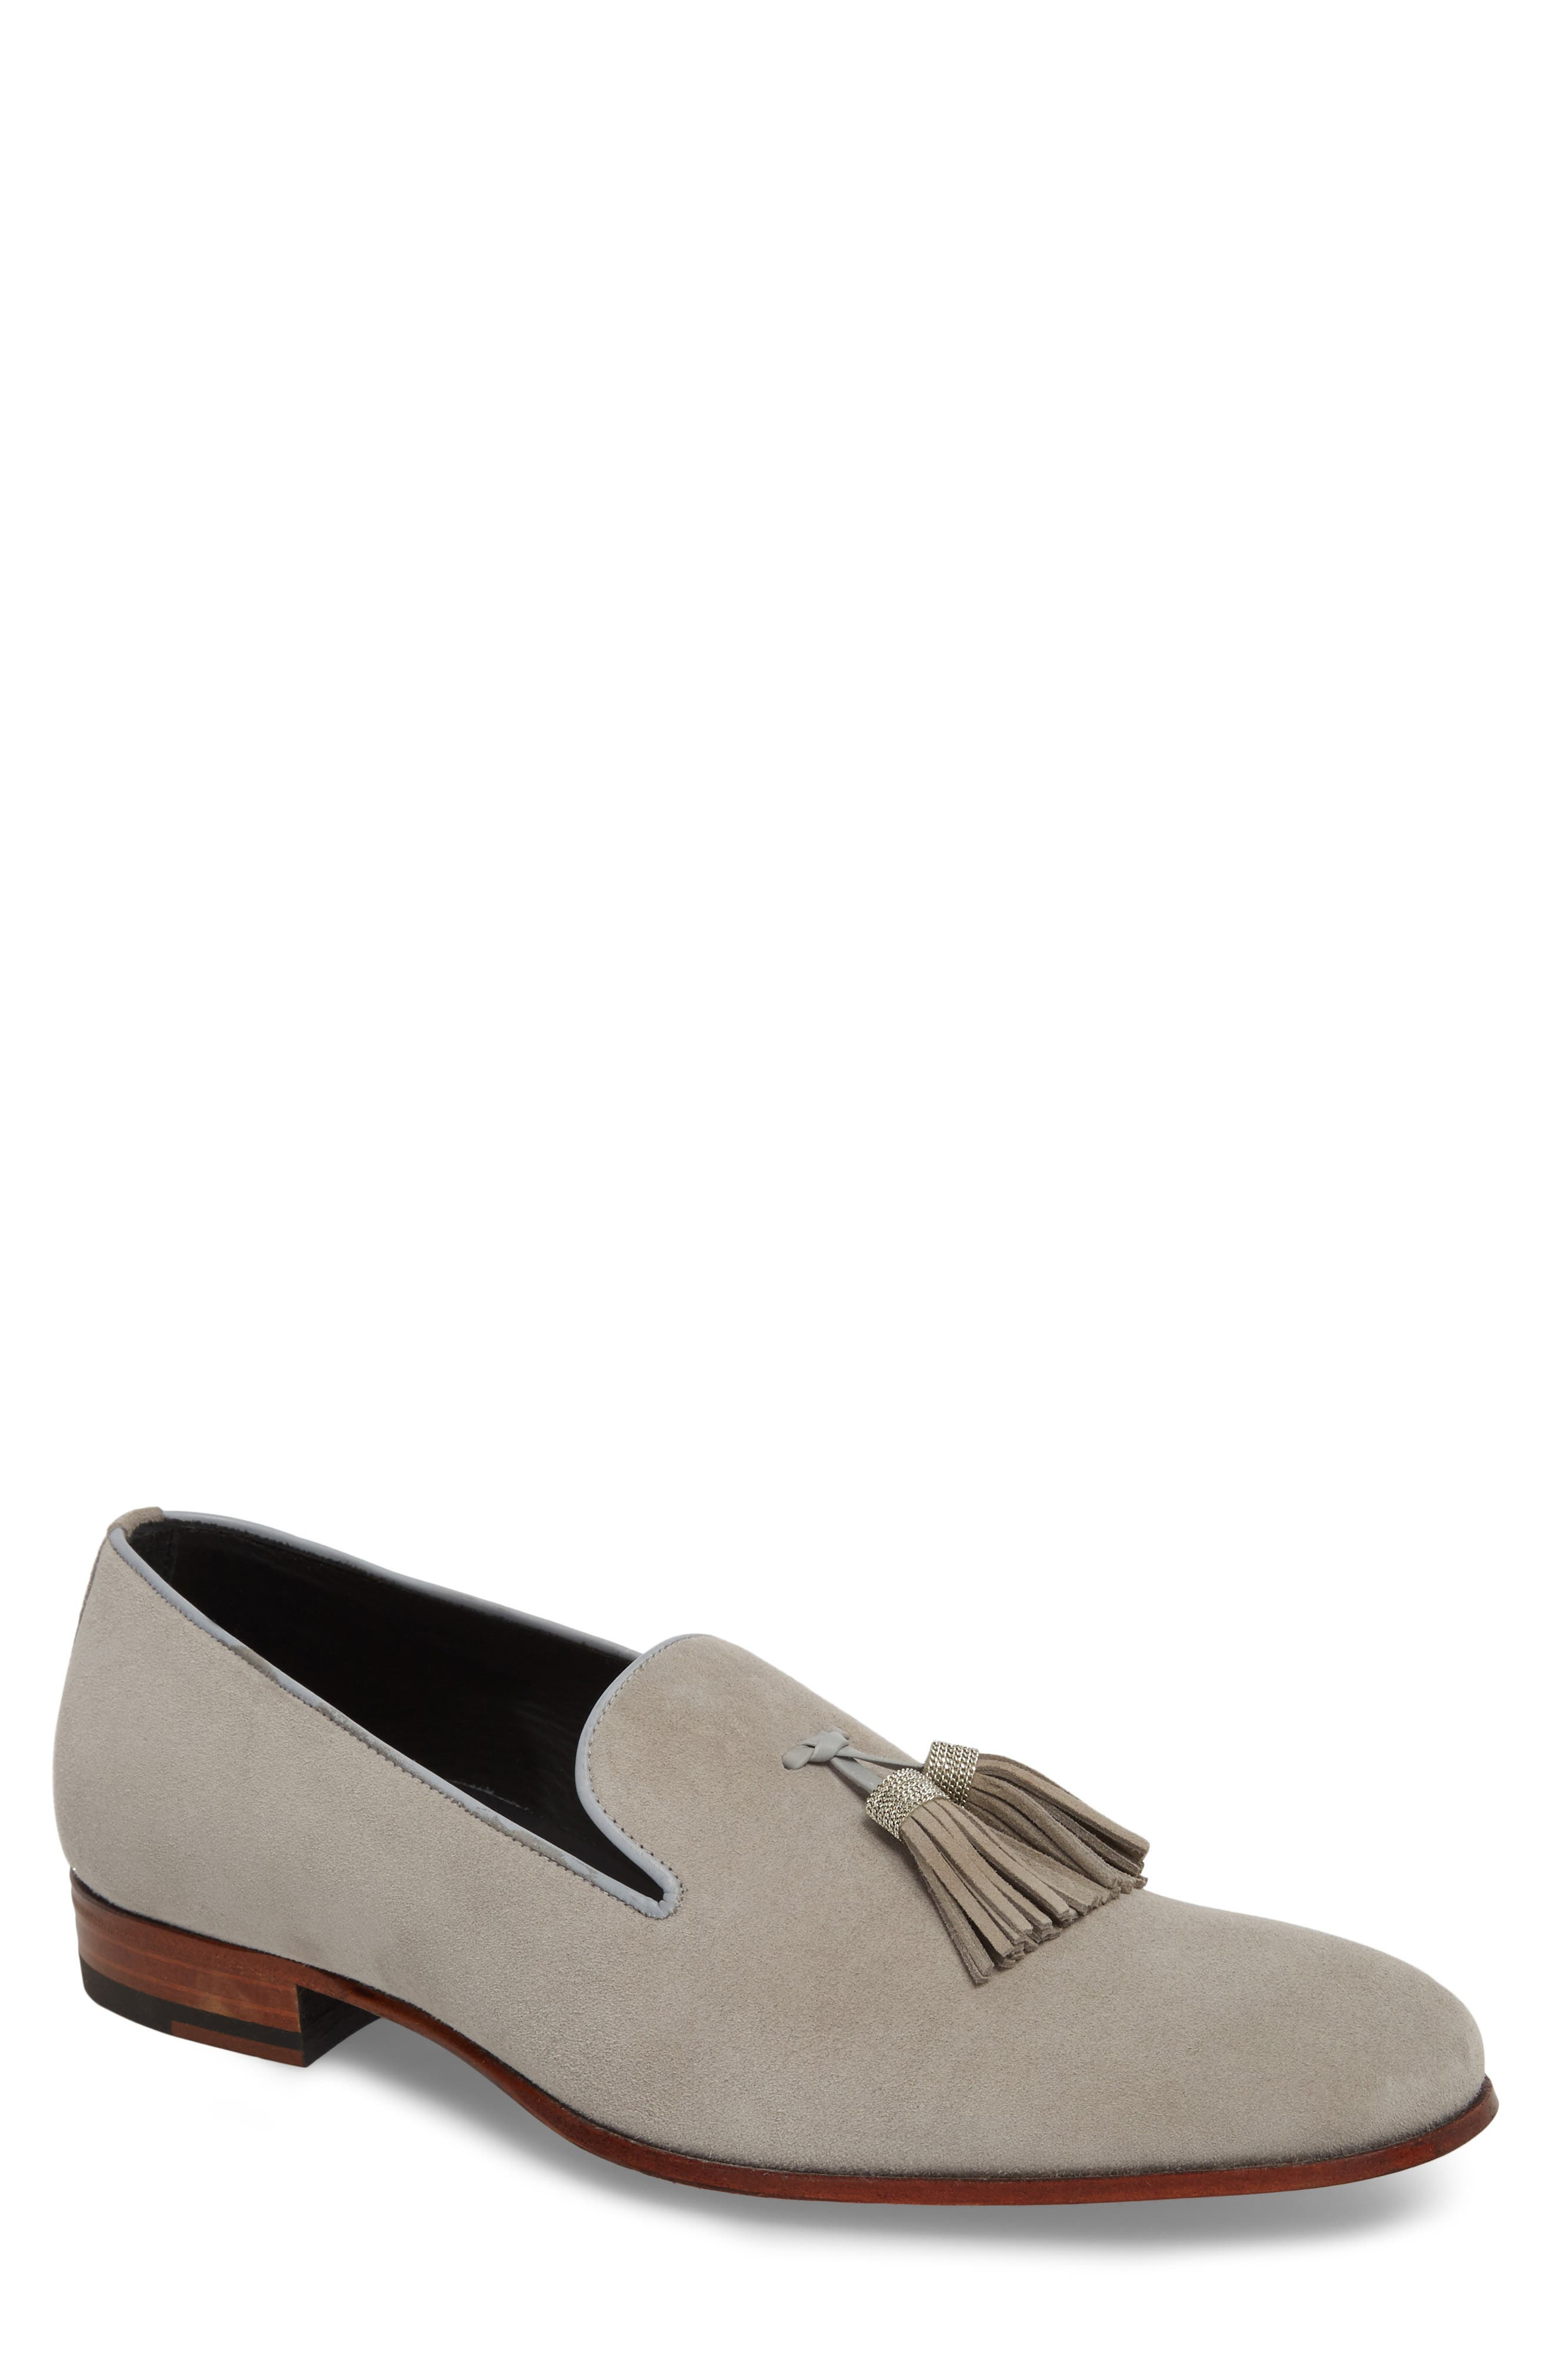 Picus Tassel Loafer,                         Main,                         color, Pearl Grey Suede